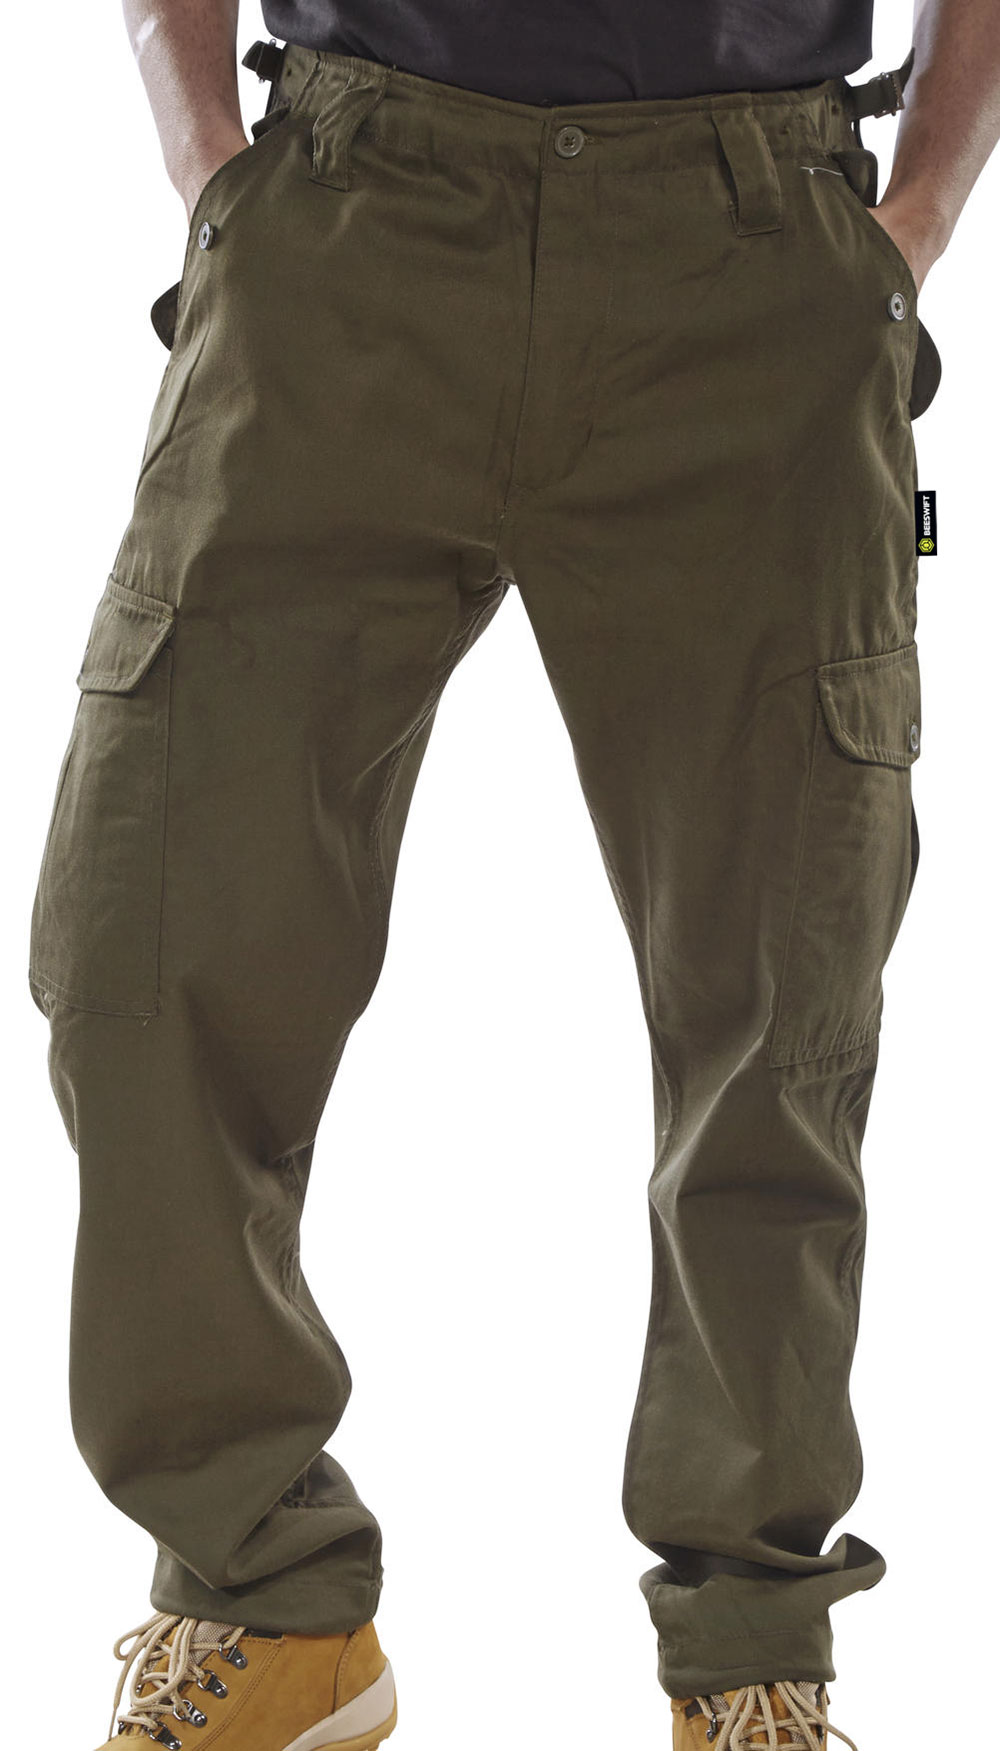 6b27028a06 PCCT - COMBAT TROUSERS OLIVE GREEN @ Beeswift, Manufacturer and ...